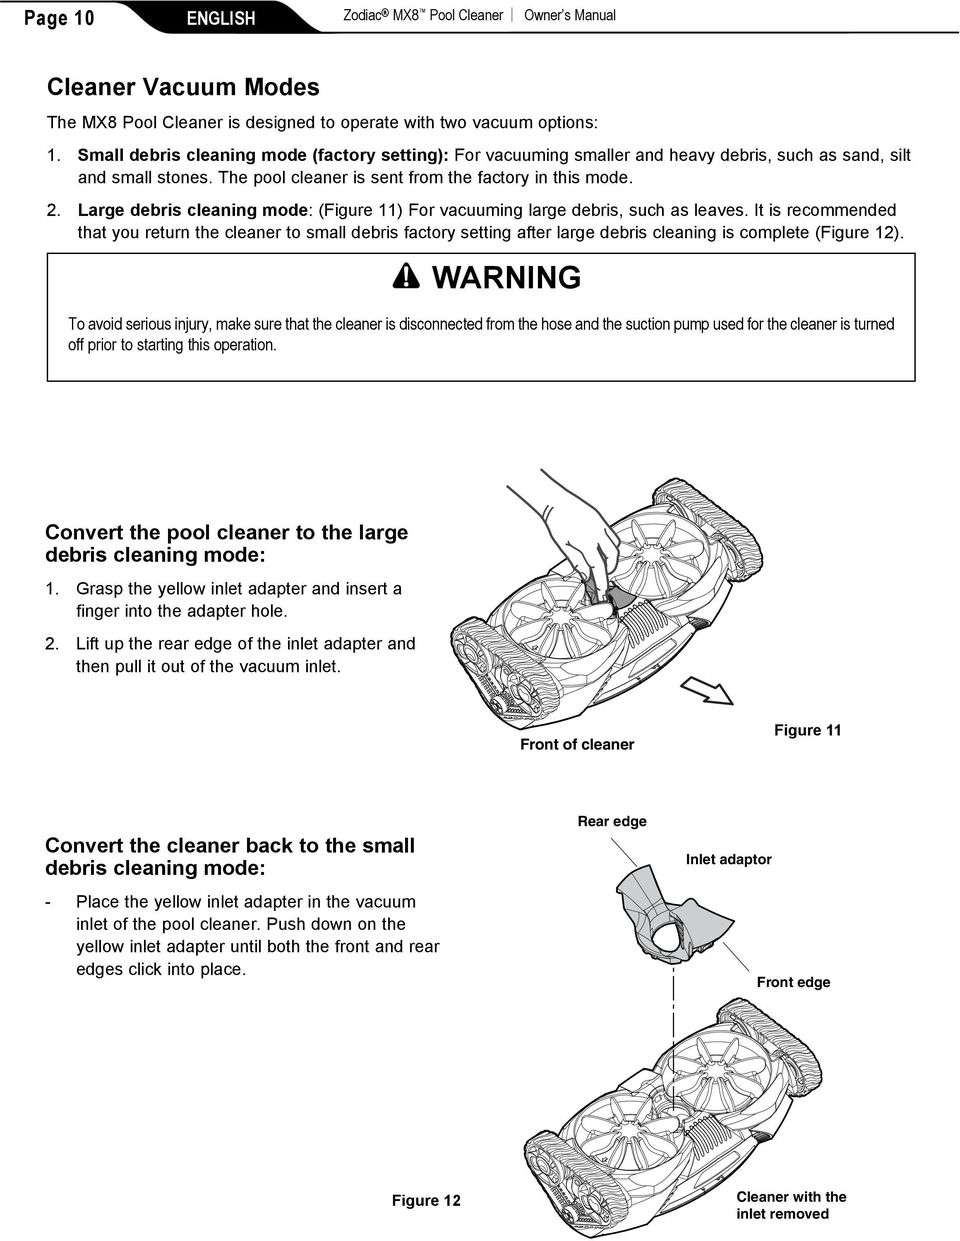 Large debris cleaning mode: (Figure 11) For vacuuming large debris, such as leaves.